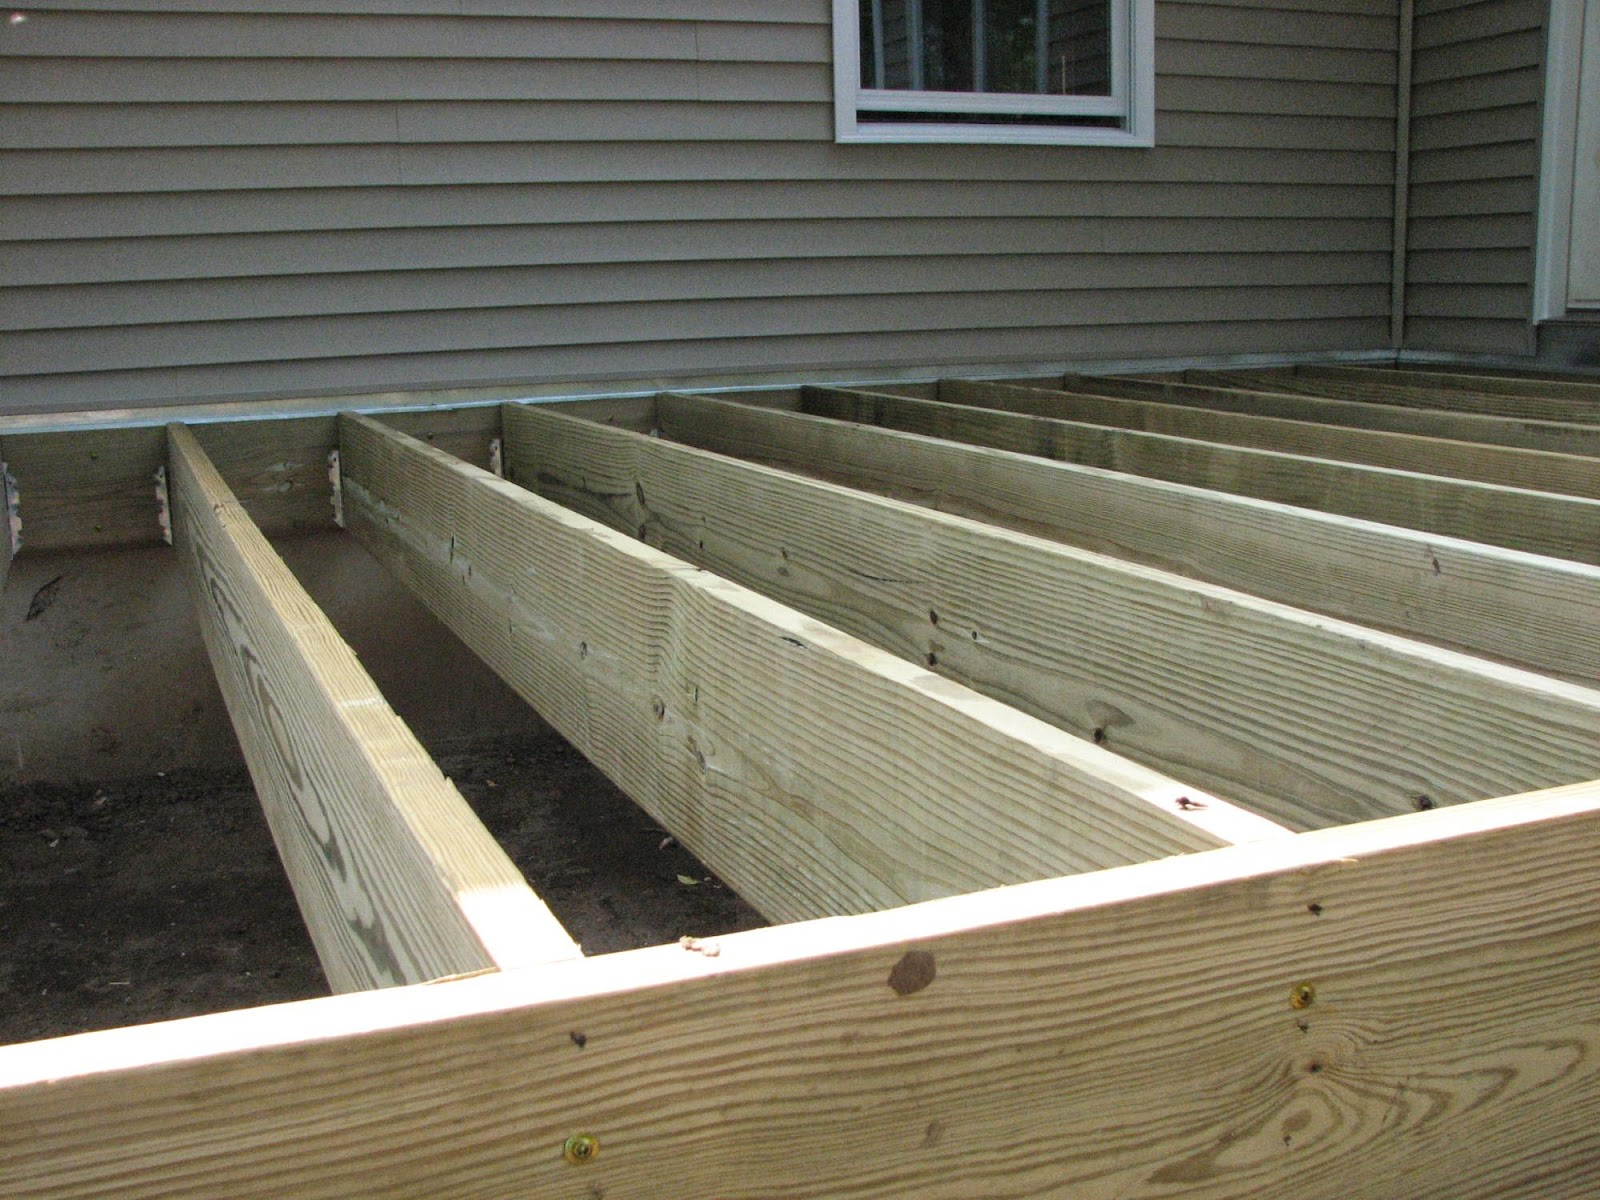 Stitches of violet insulation and deck joists for Balcony joists